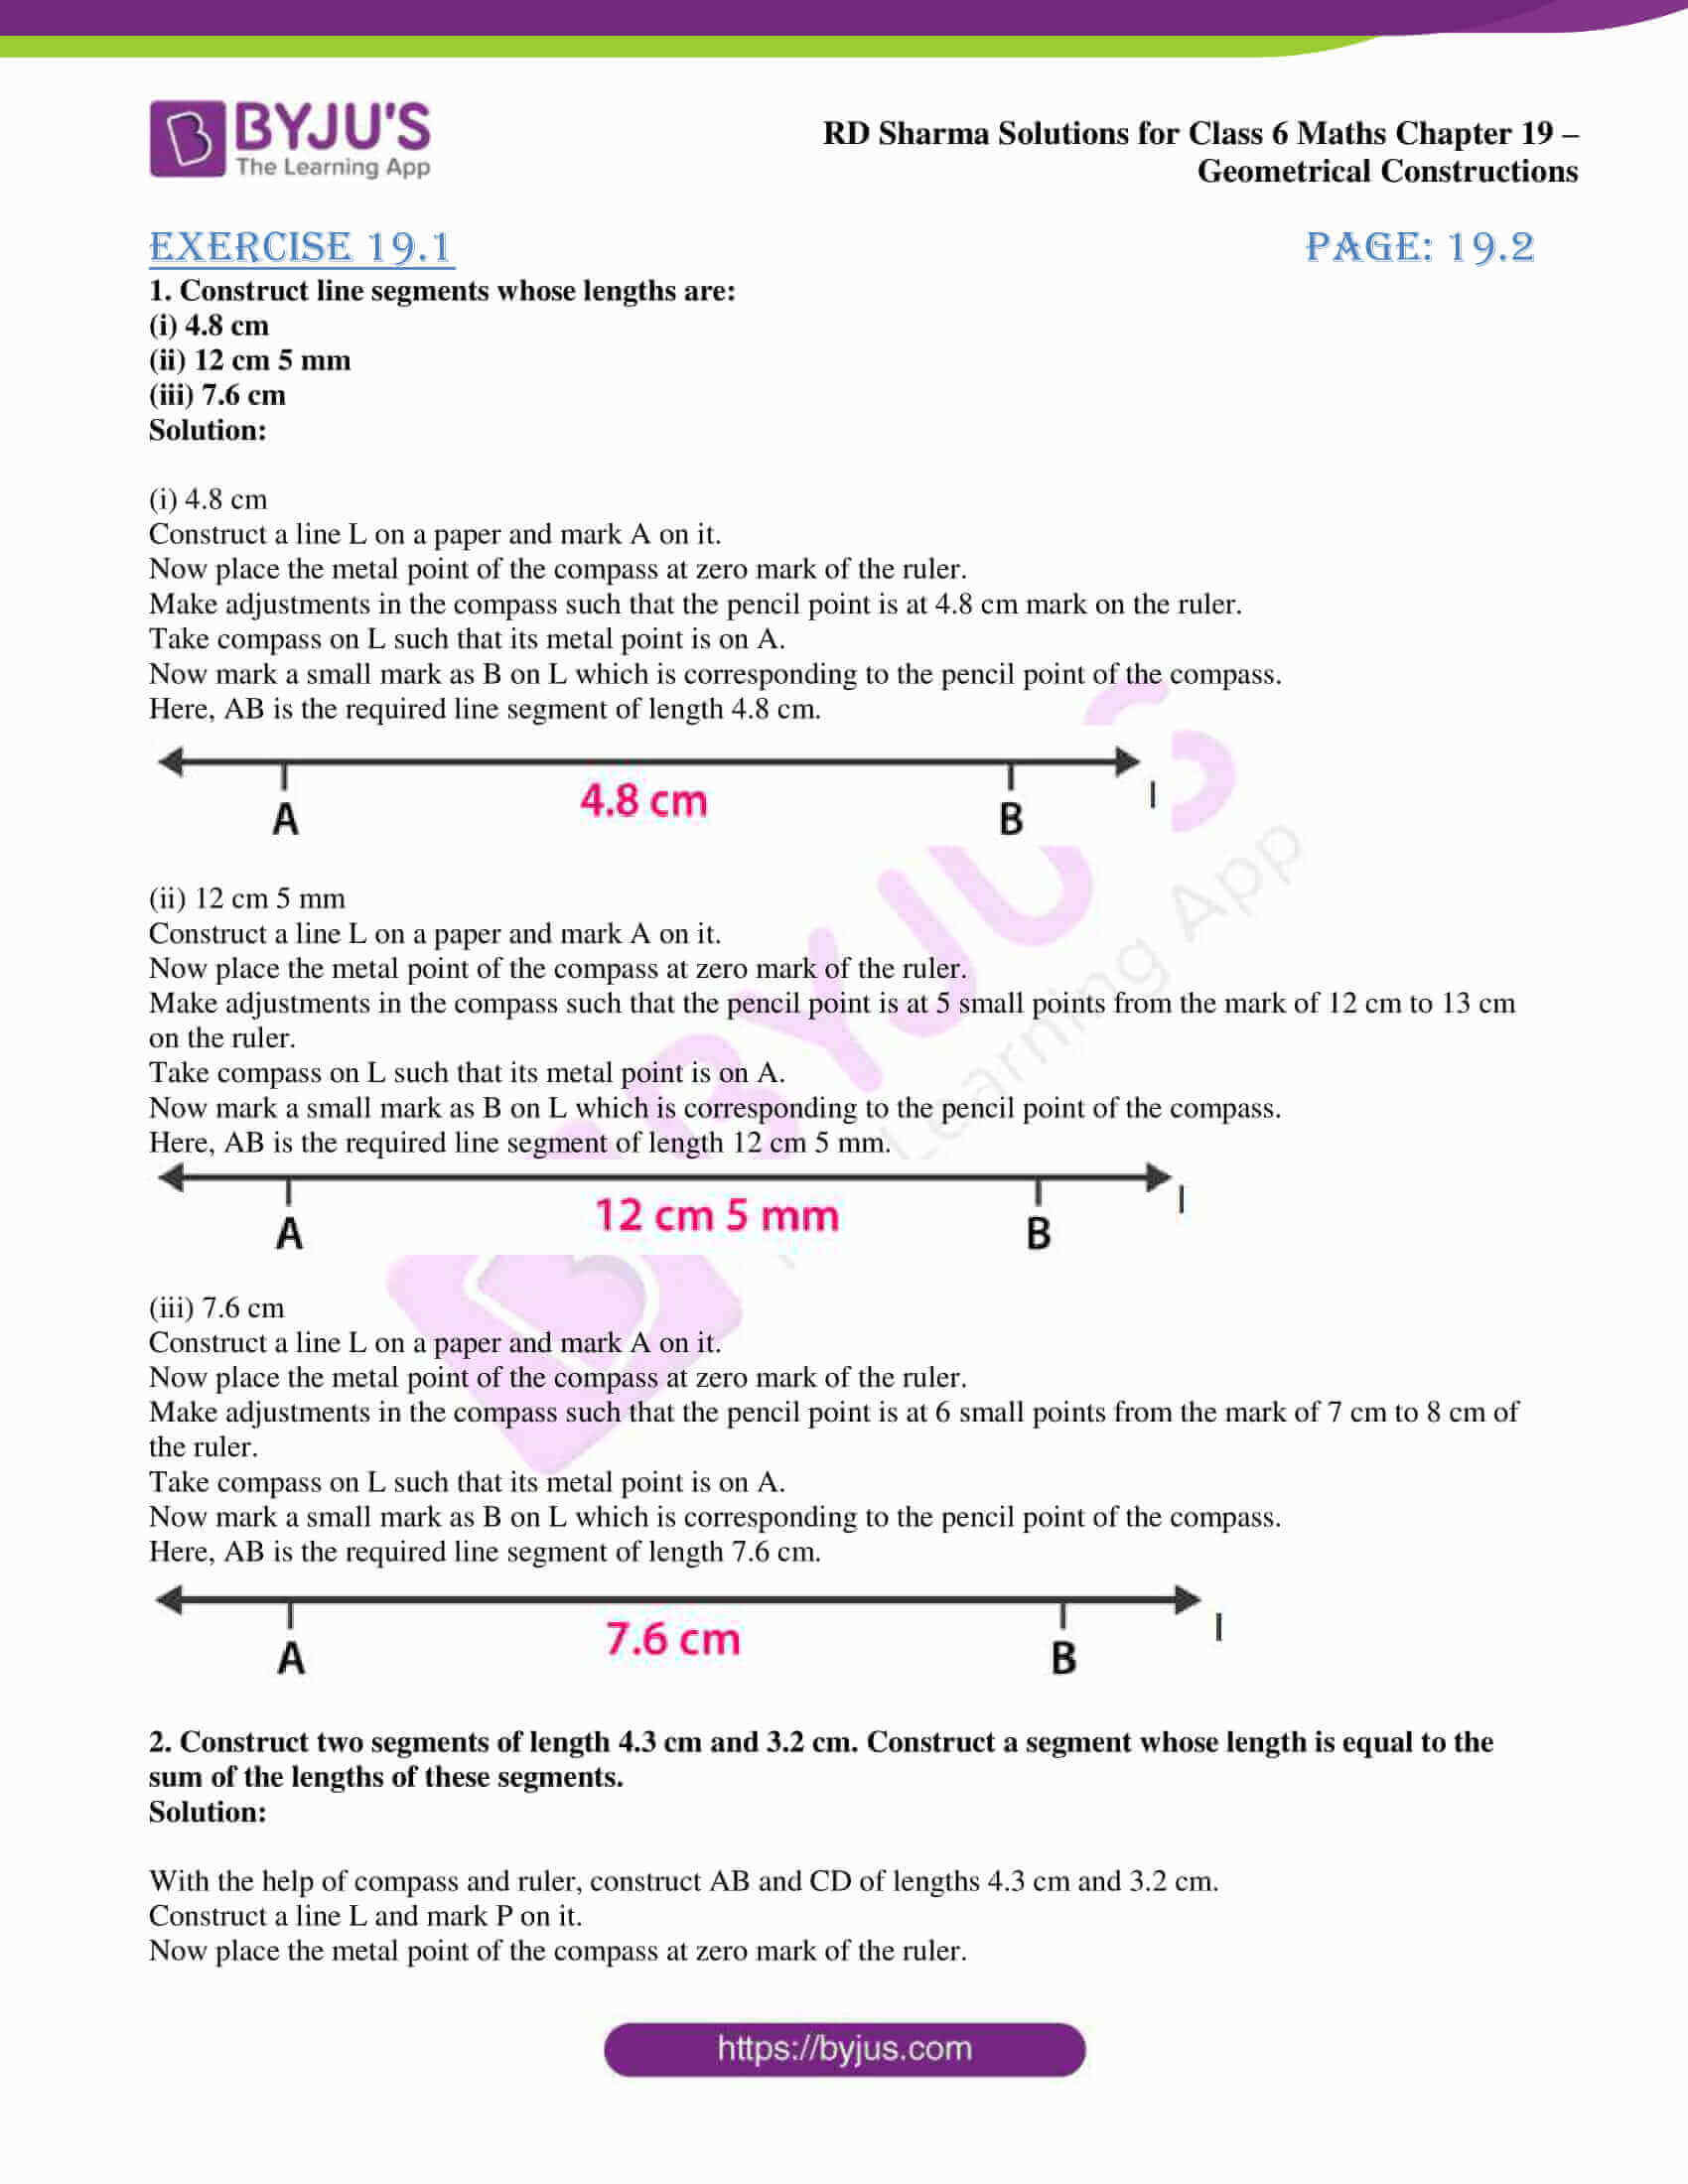 rd sharma solutions nov2020 class 6 maths chapter 19 exercise 1 1